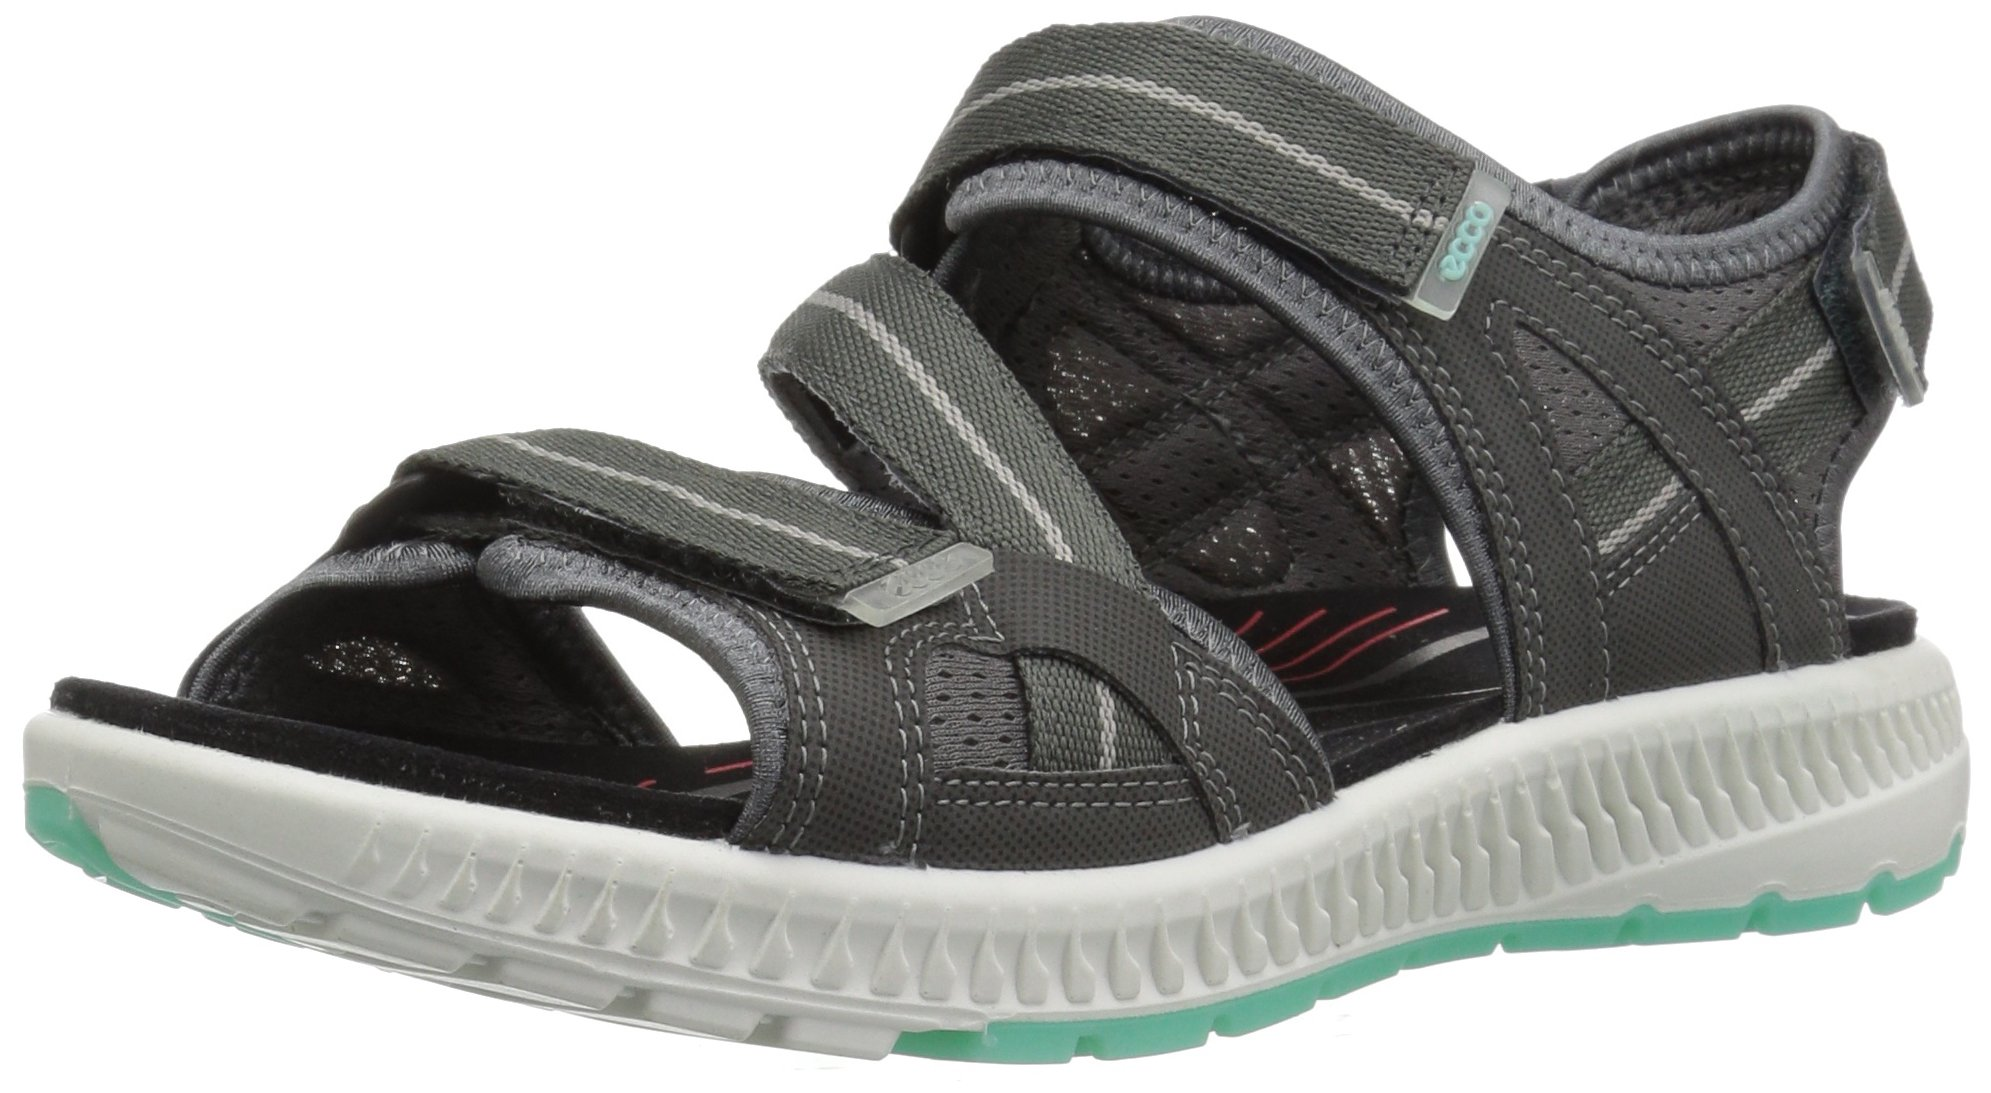 ECCO Women's Terra 3S Athletic Sandal, Dark Shadow/Emerald, 39 EU/8-8.5 M US